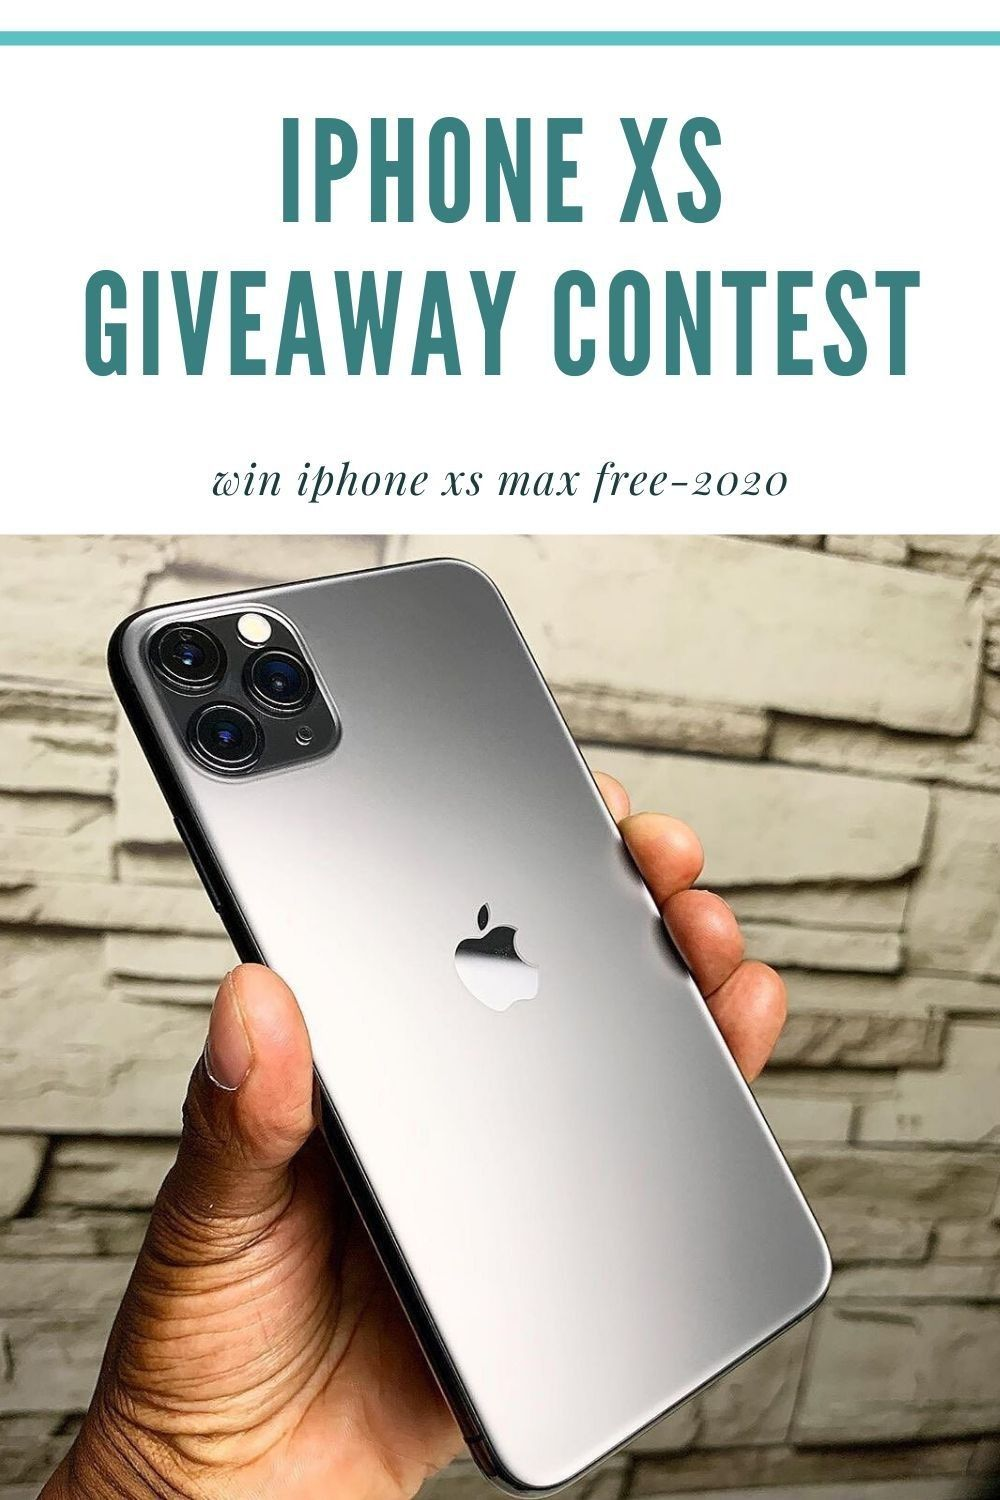 Giveaway Contest 2020 Iphone Xs